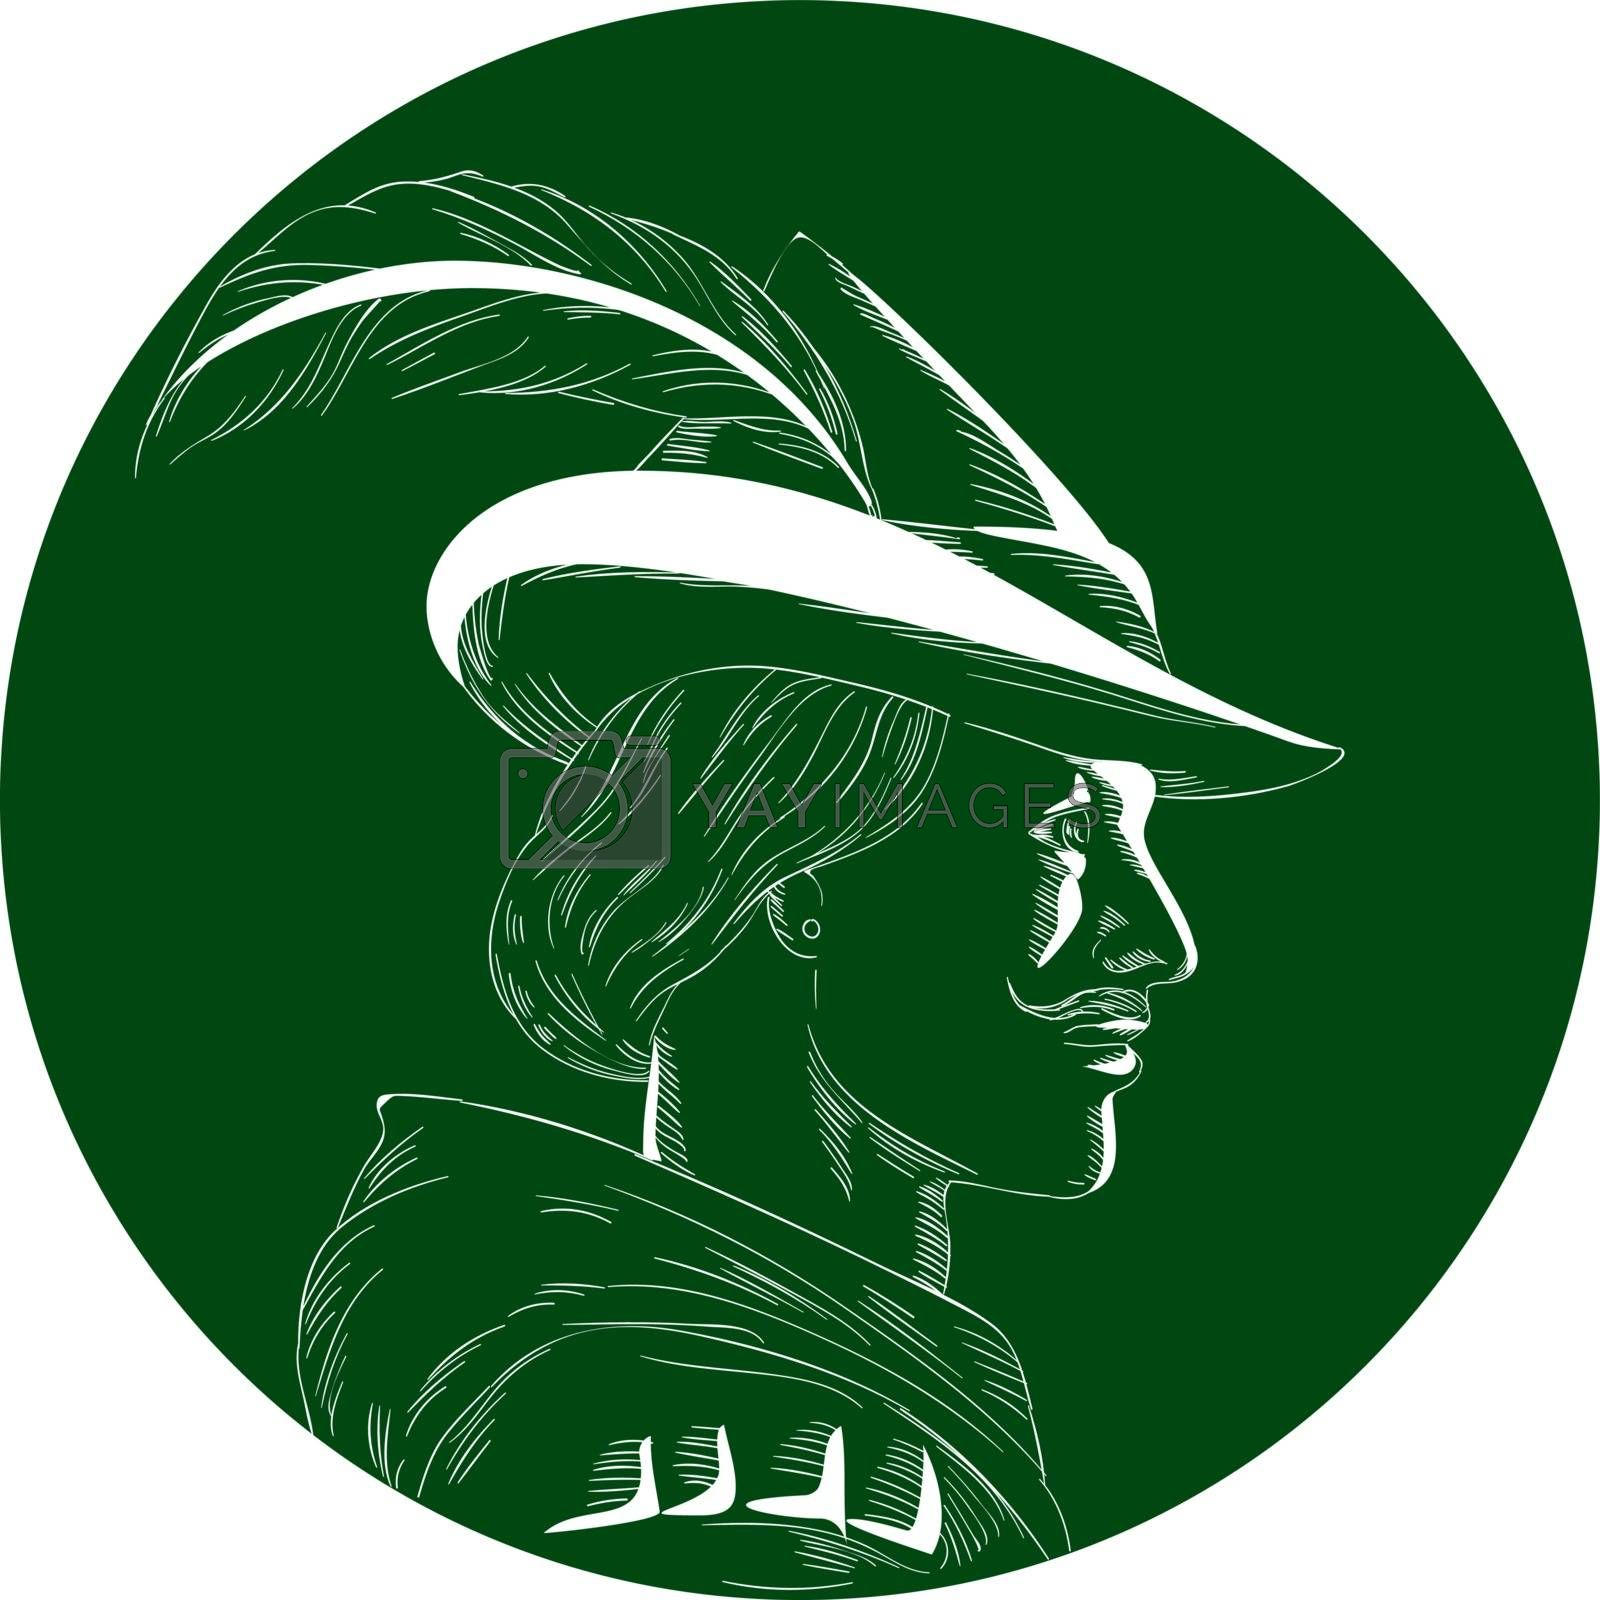 Illustration of a Robin Hood wearing medieval hat with a pointed brim and feather viewed from side set inside circle done in retro woodcut style.